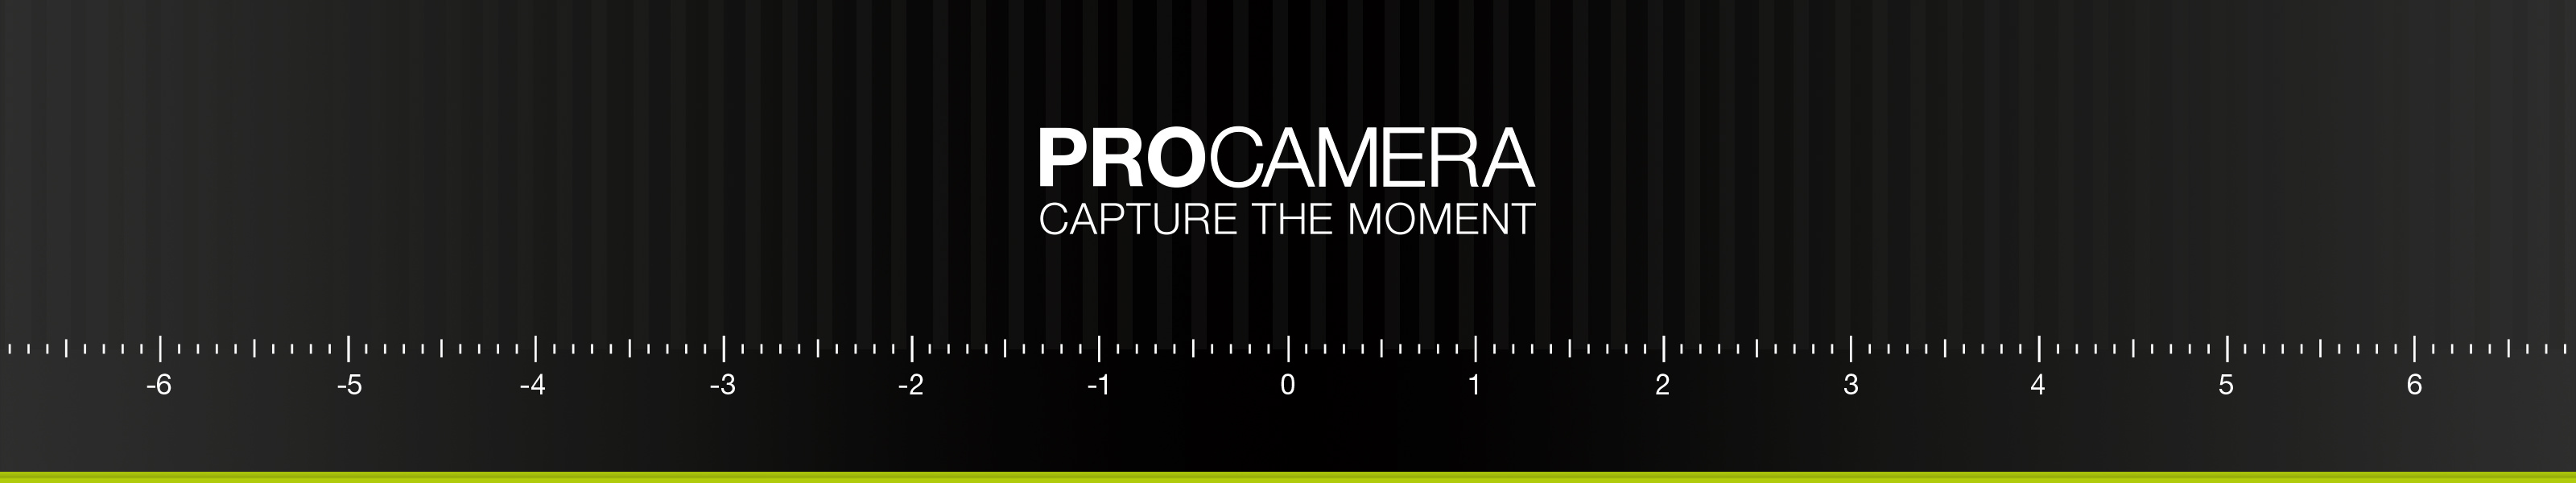 ProCamera - Capture the moment